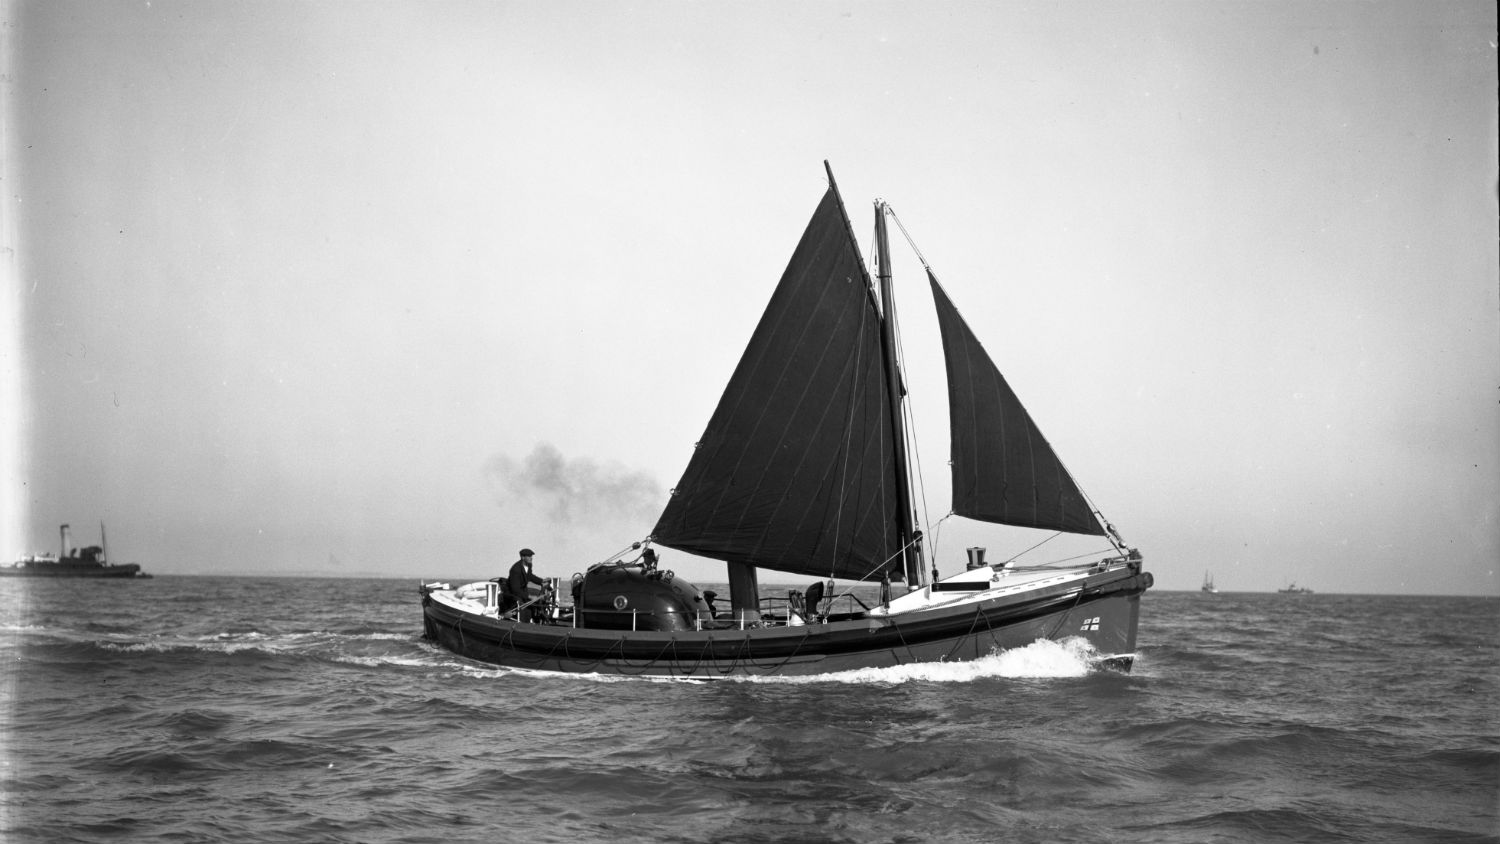 Black and white image of Port Patrick lifeboat, J. and W., while on trials